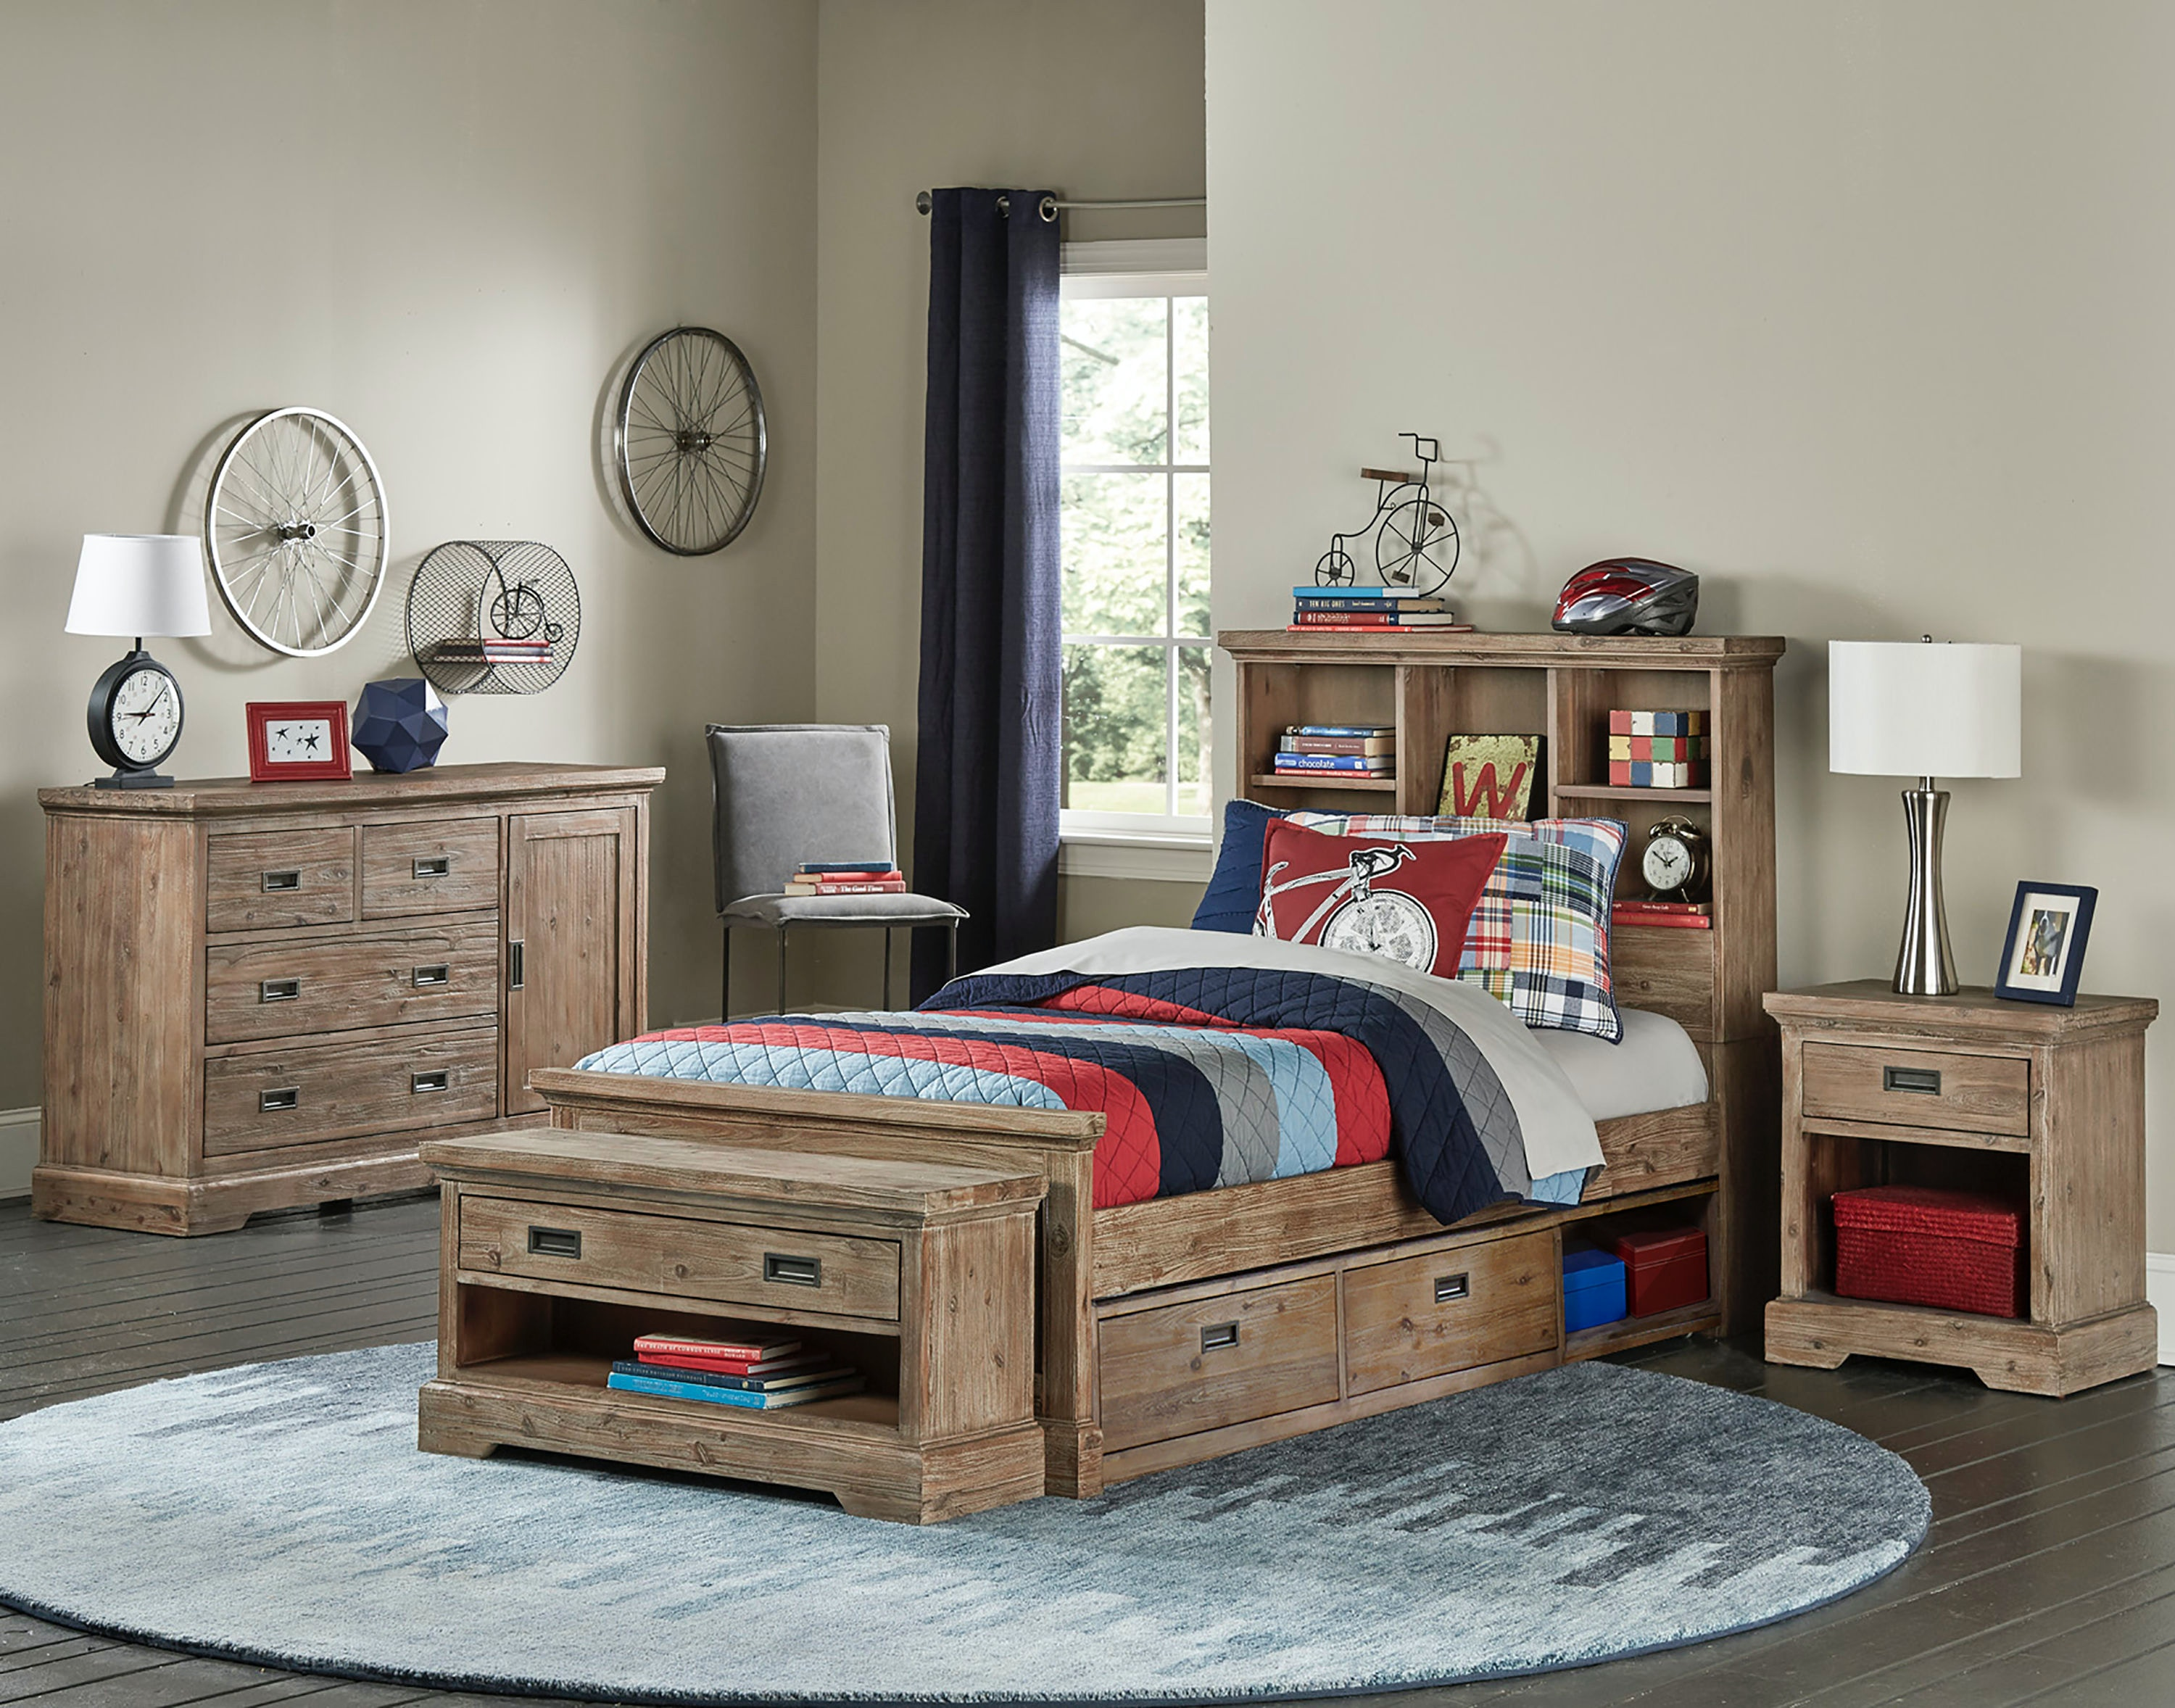 Hillsdale Kids And Teen Oxford Bookcase Twin Bed With Storage 7104 370NS